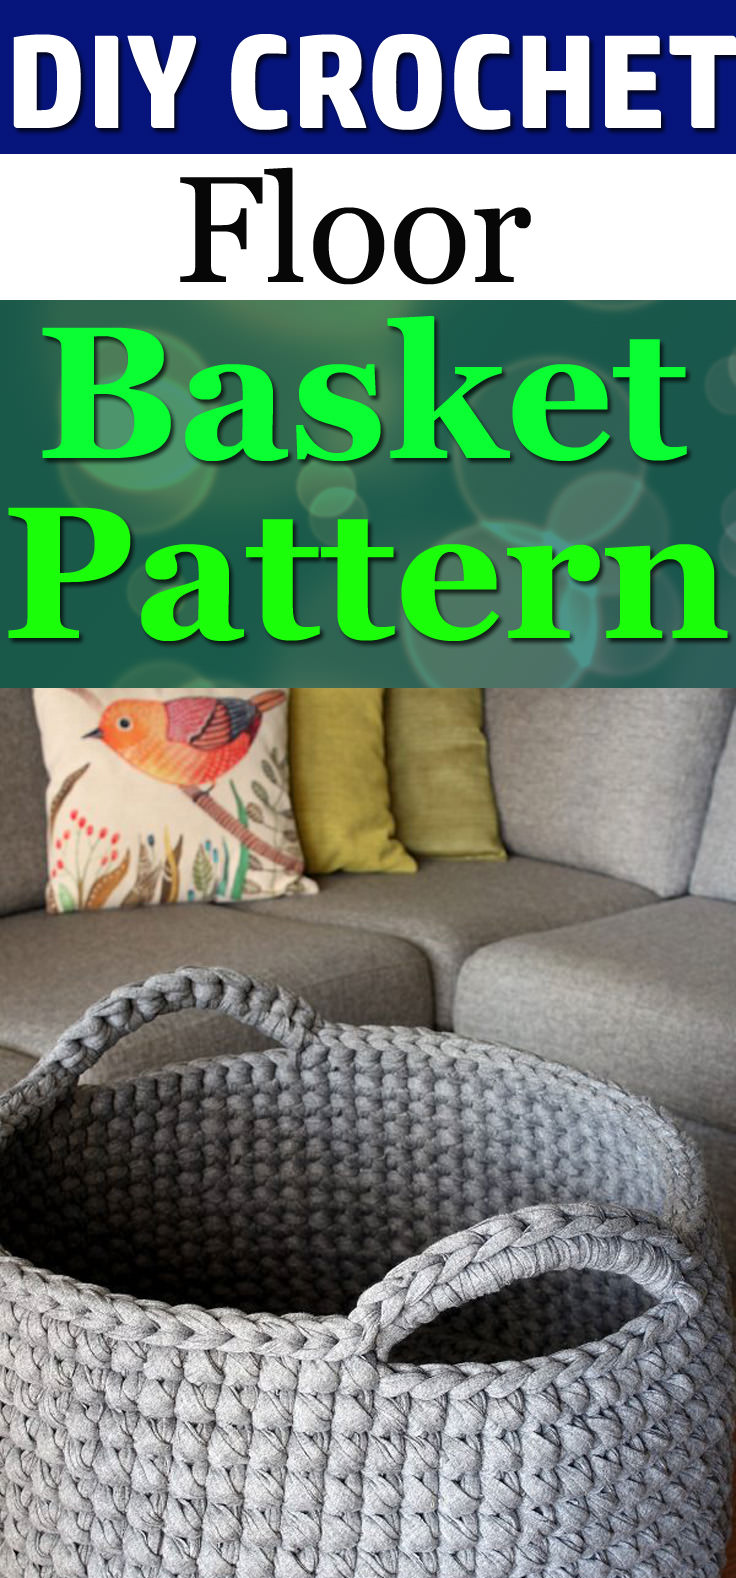 Learn how to make this Floor Basket with ourfree crochet pattern, it's fun and easy to follow!